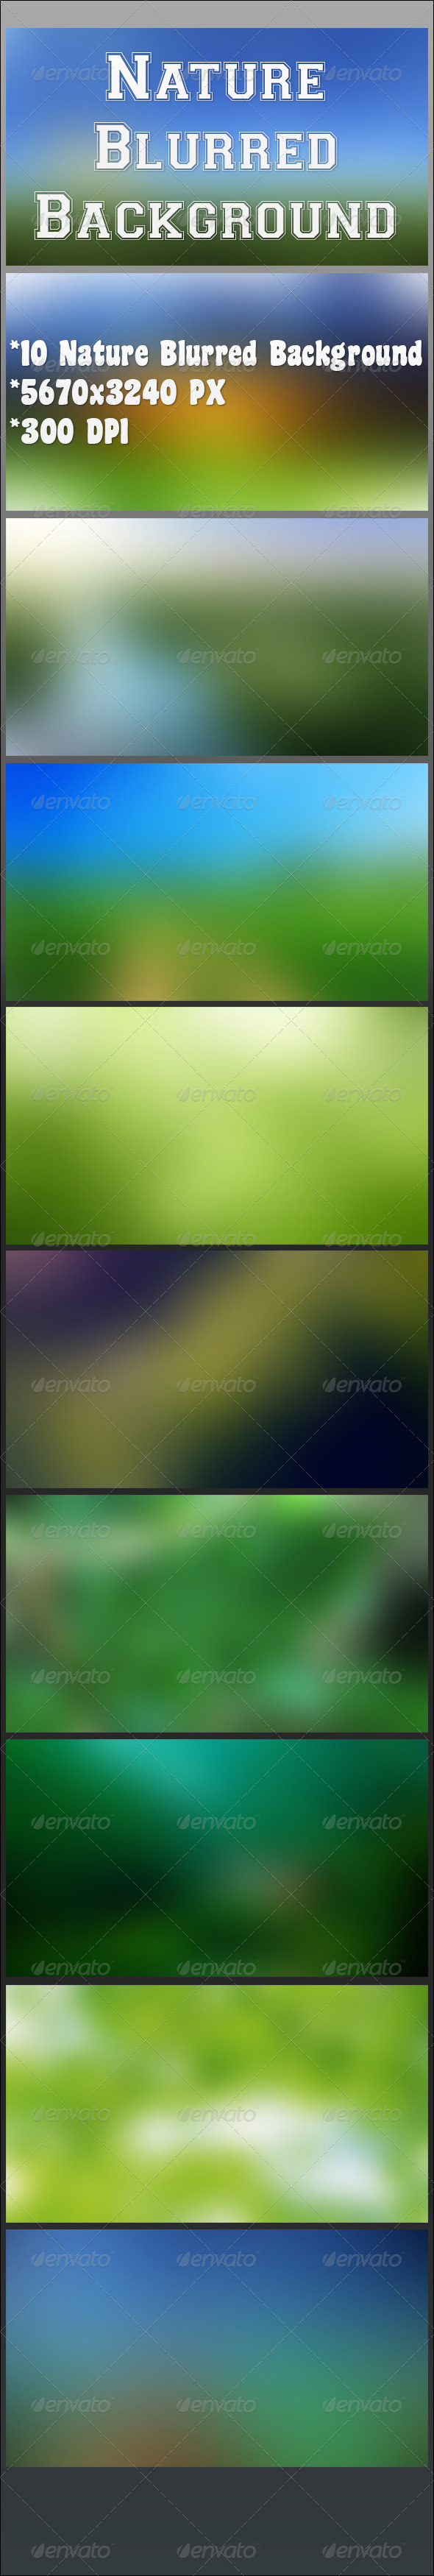 GraphicRiver Nature Blurred Background 6799503